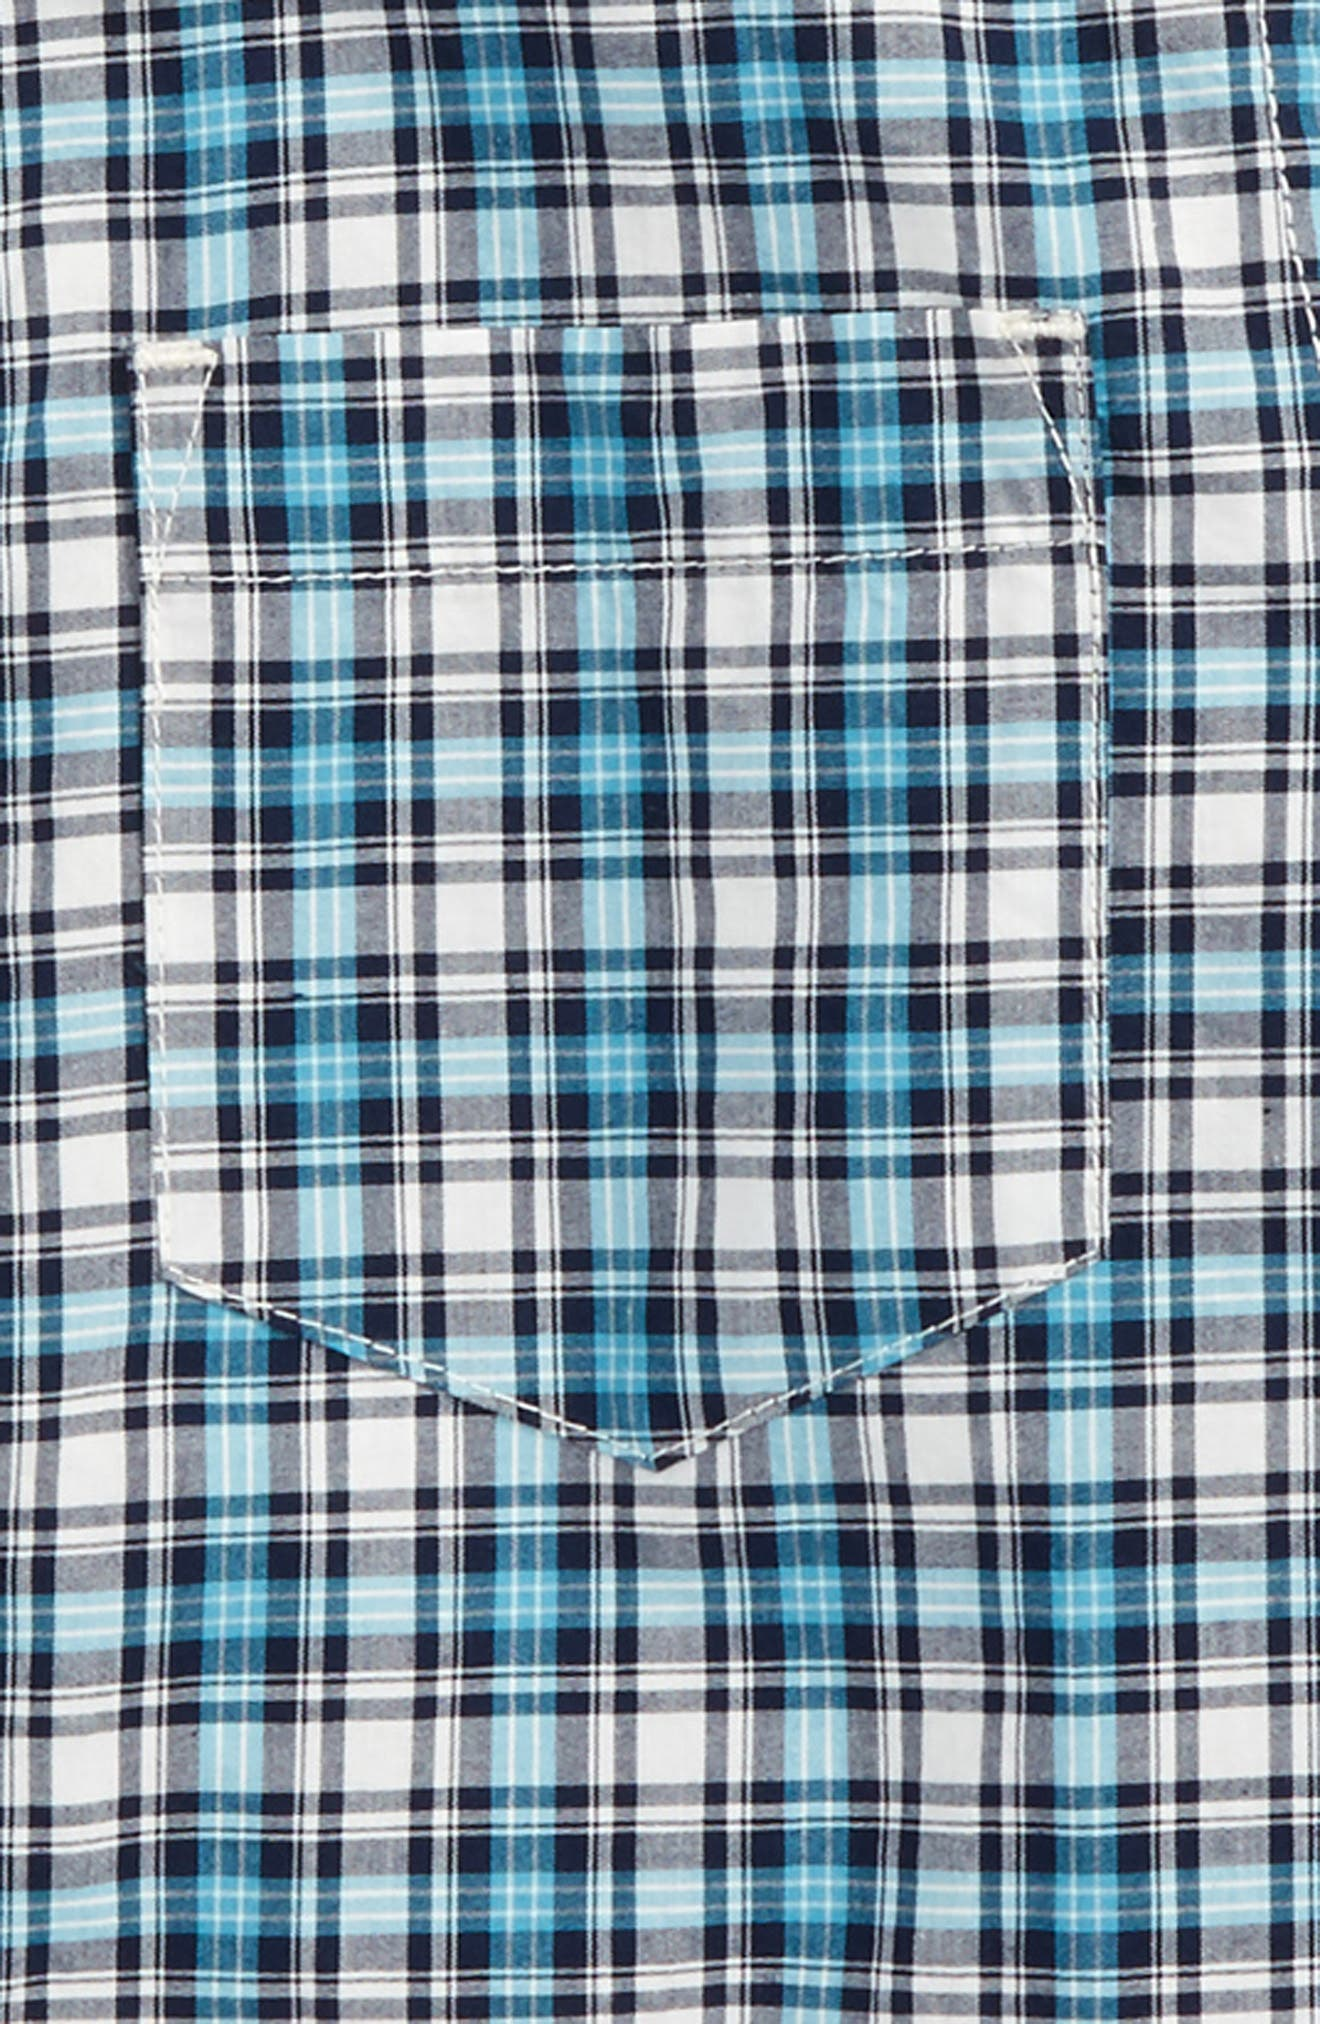 Heath Plaid Woven Shirt,                             Alternate thumbnail 2, color,                             Chalk